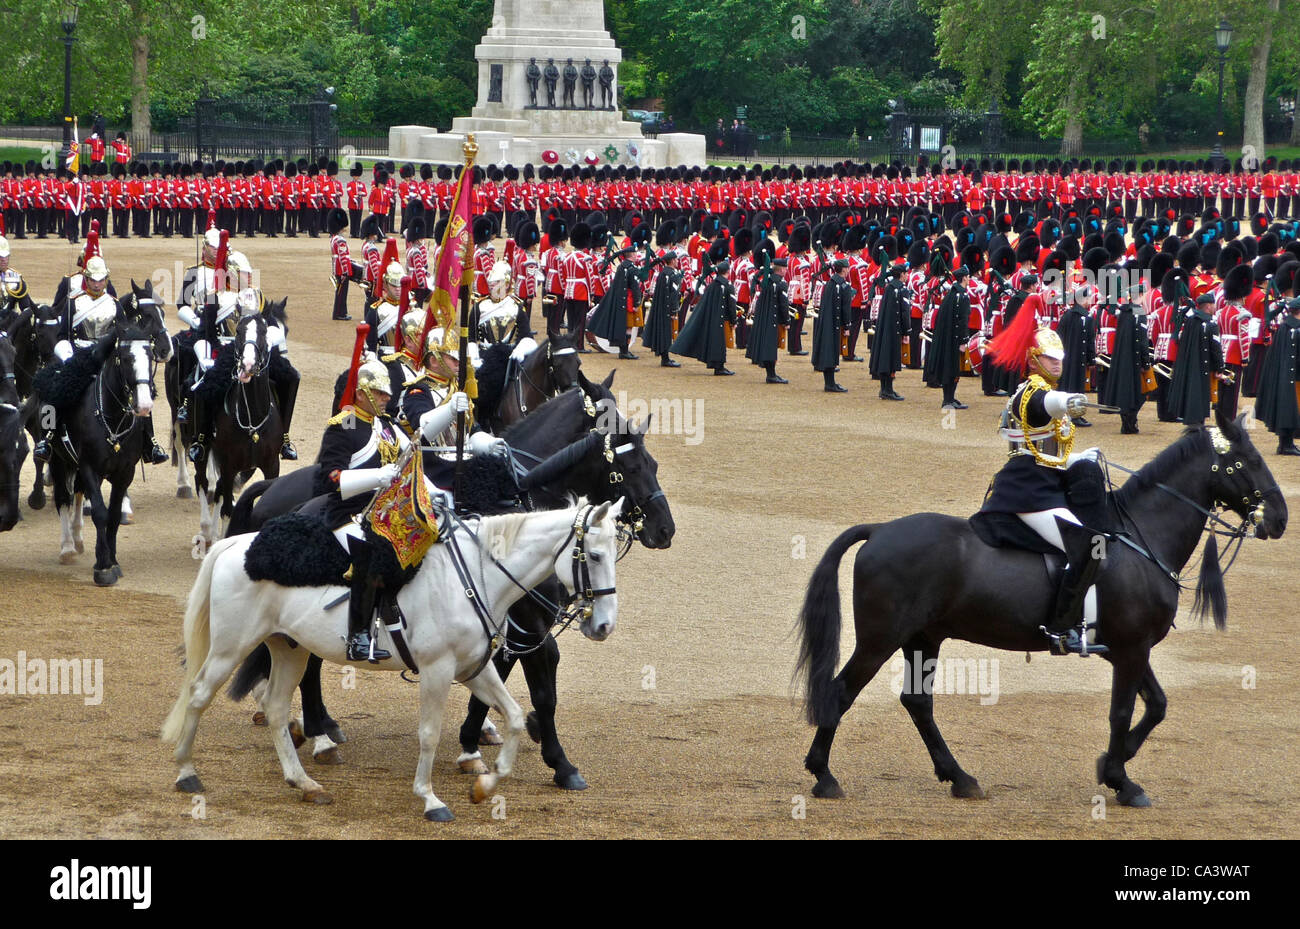 Trooping The Colour 2nd June 2012 - The Major General's Review, the mounted soldiers are the Blues and Royals - Stock Image